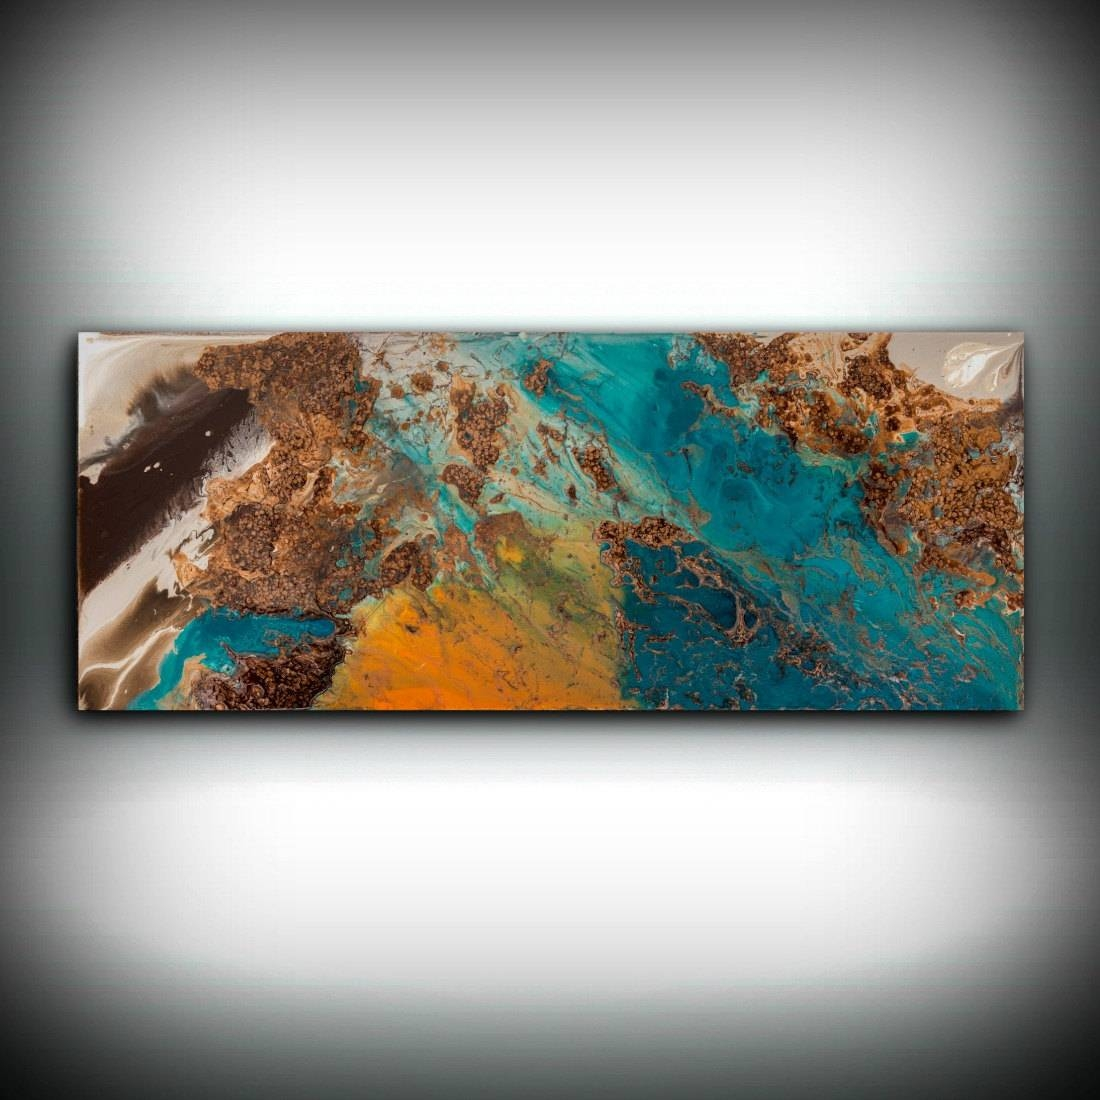 Sale Blue And Copper Art, Wall Art Prints Fine Art Prints Abstract With Regard To Current Modern Wall Art For Sale (View 12 of 20)